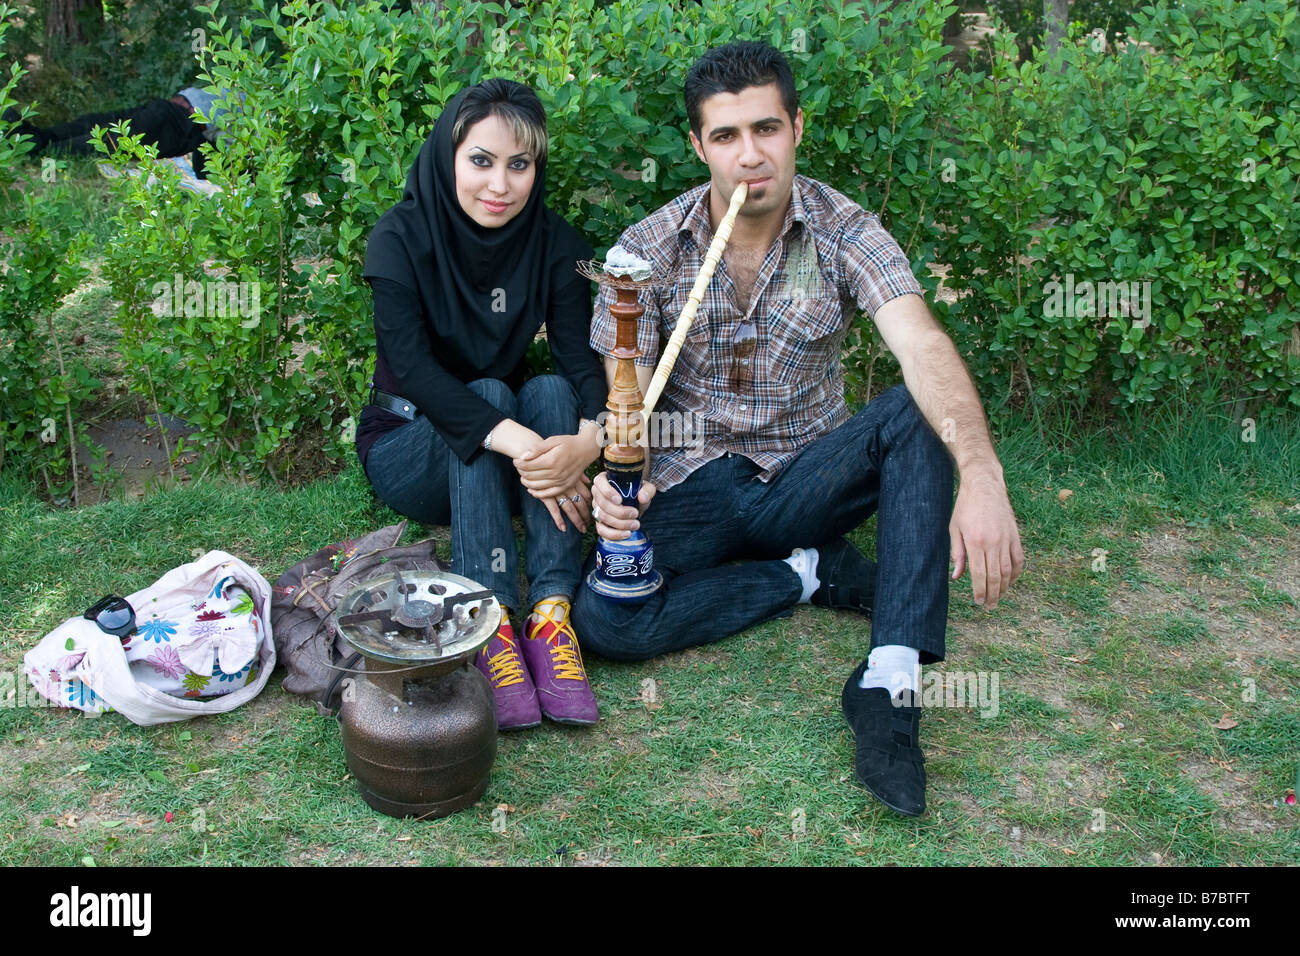 hokah muslim dating site Helahel is a completly free muslim marriage and matrimonial site designed to help single muslims from around the world find their ideal life  (including hookah).